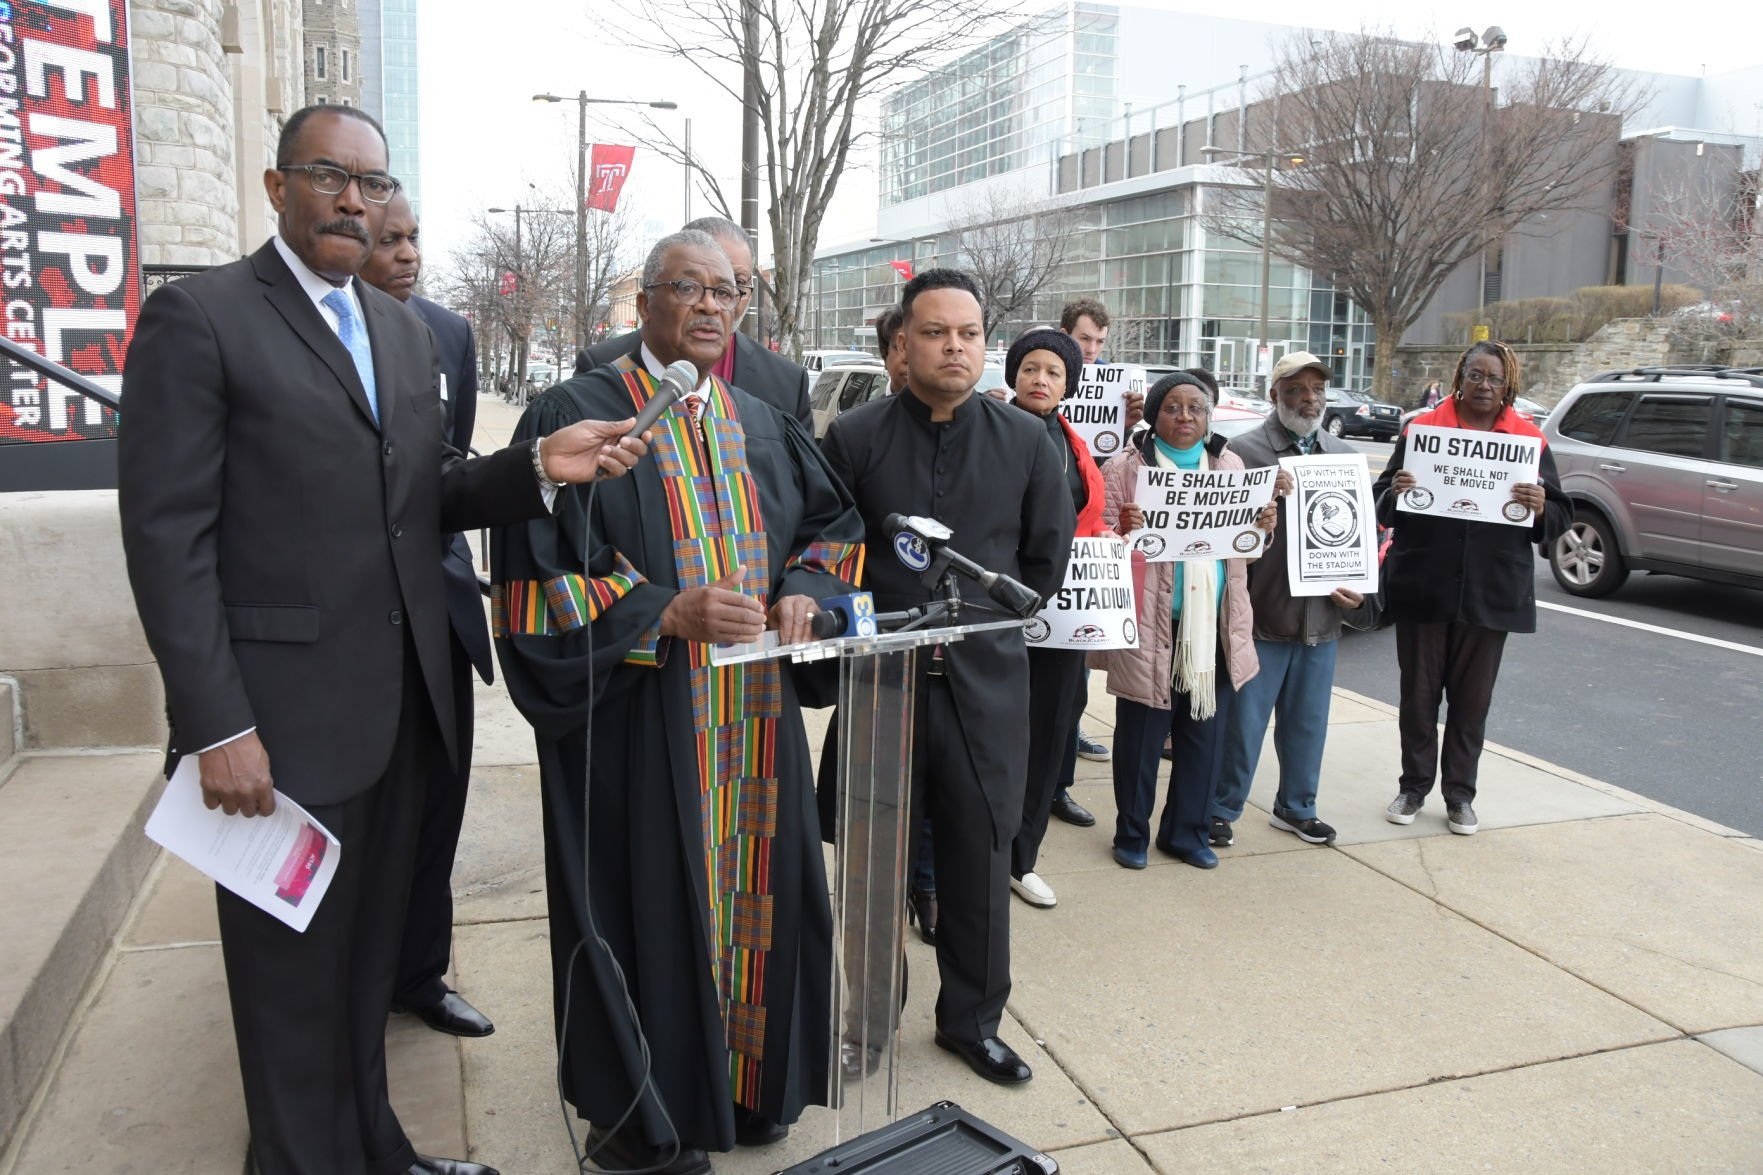 Community groups keep pressure on Temple over